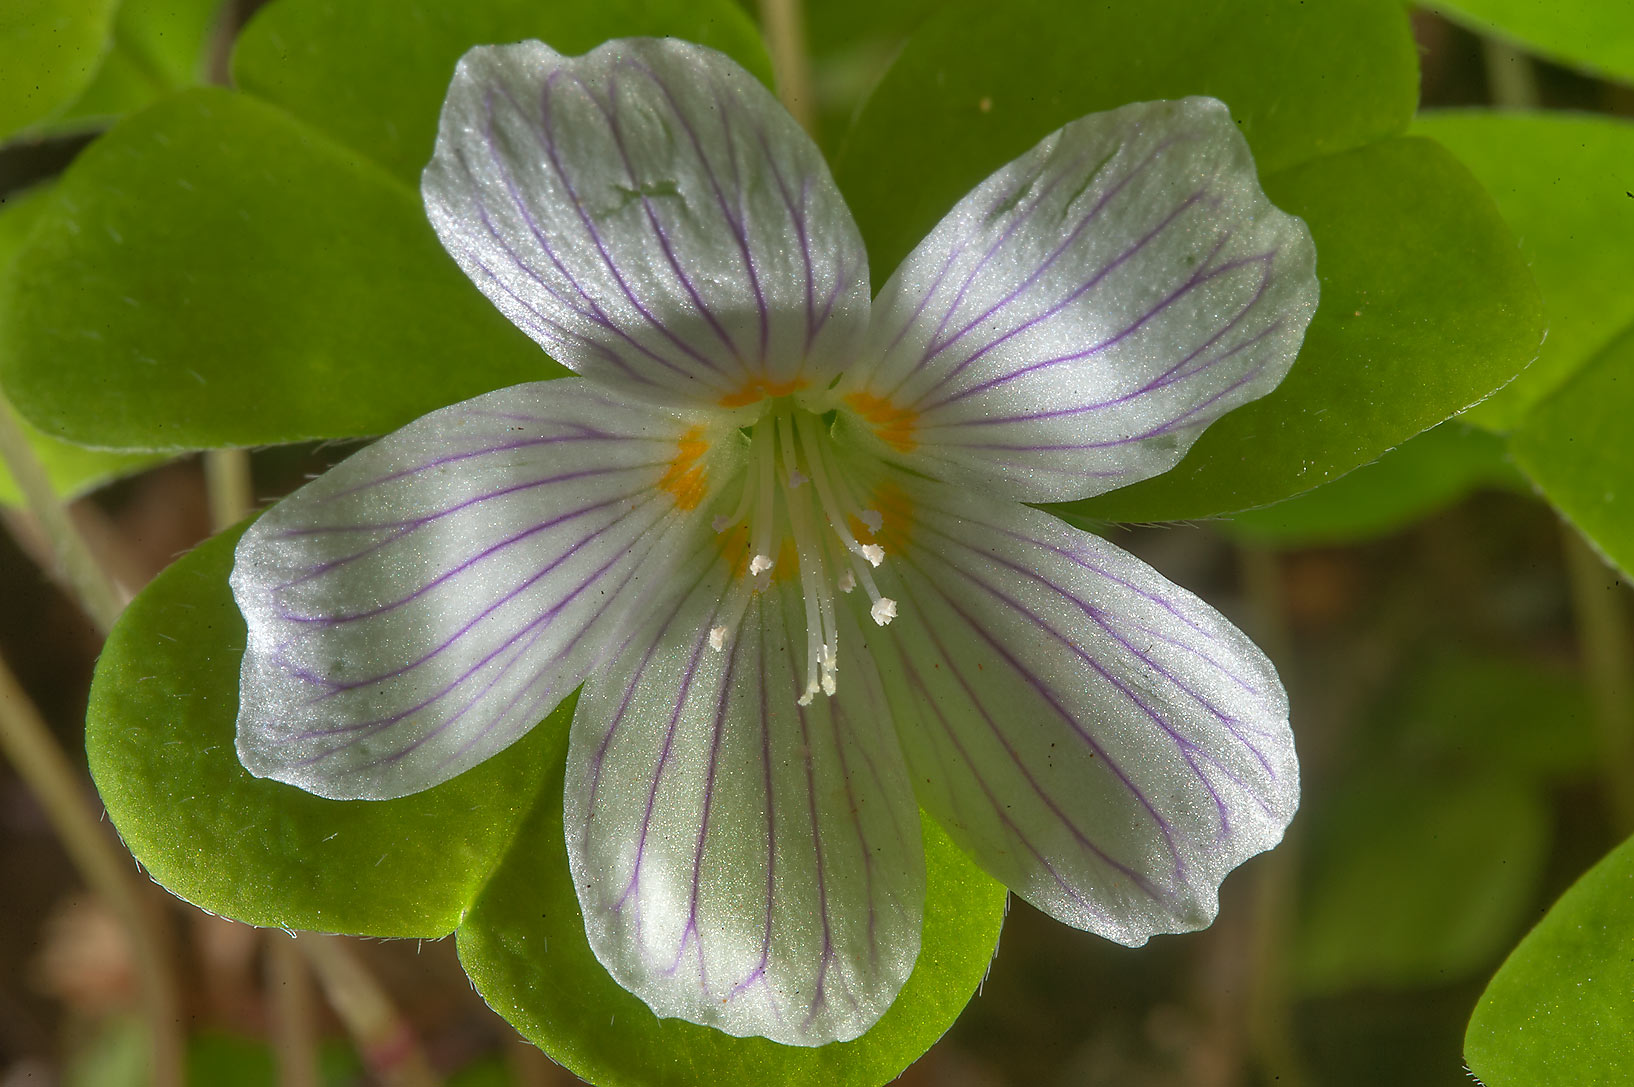 Flower of wood sorrel (Oxalis acetosella, Russian...suburb of St.Petersburg, Russia